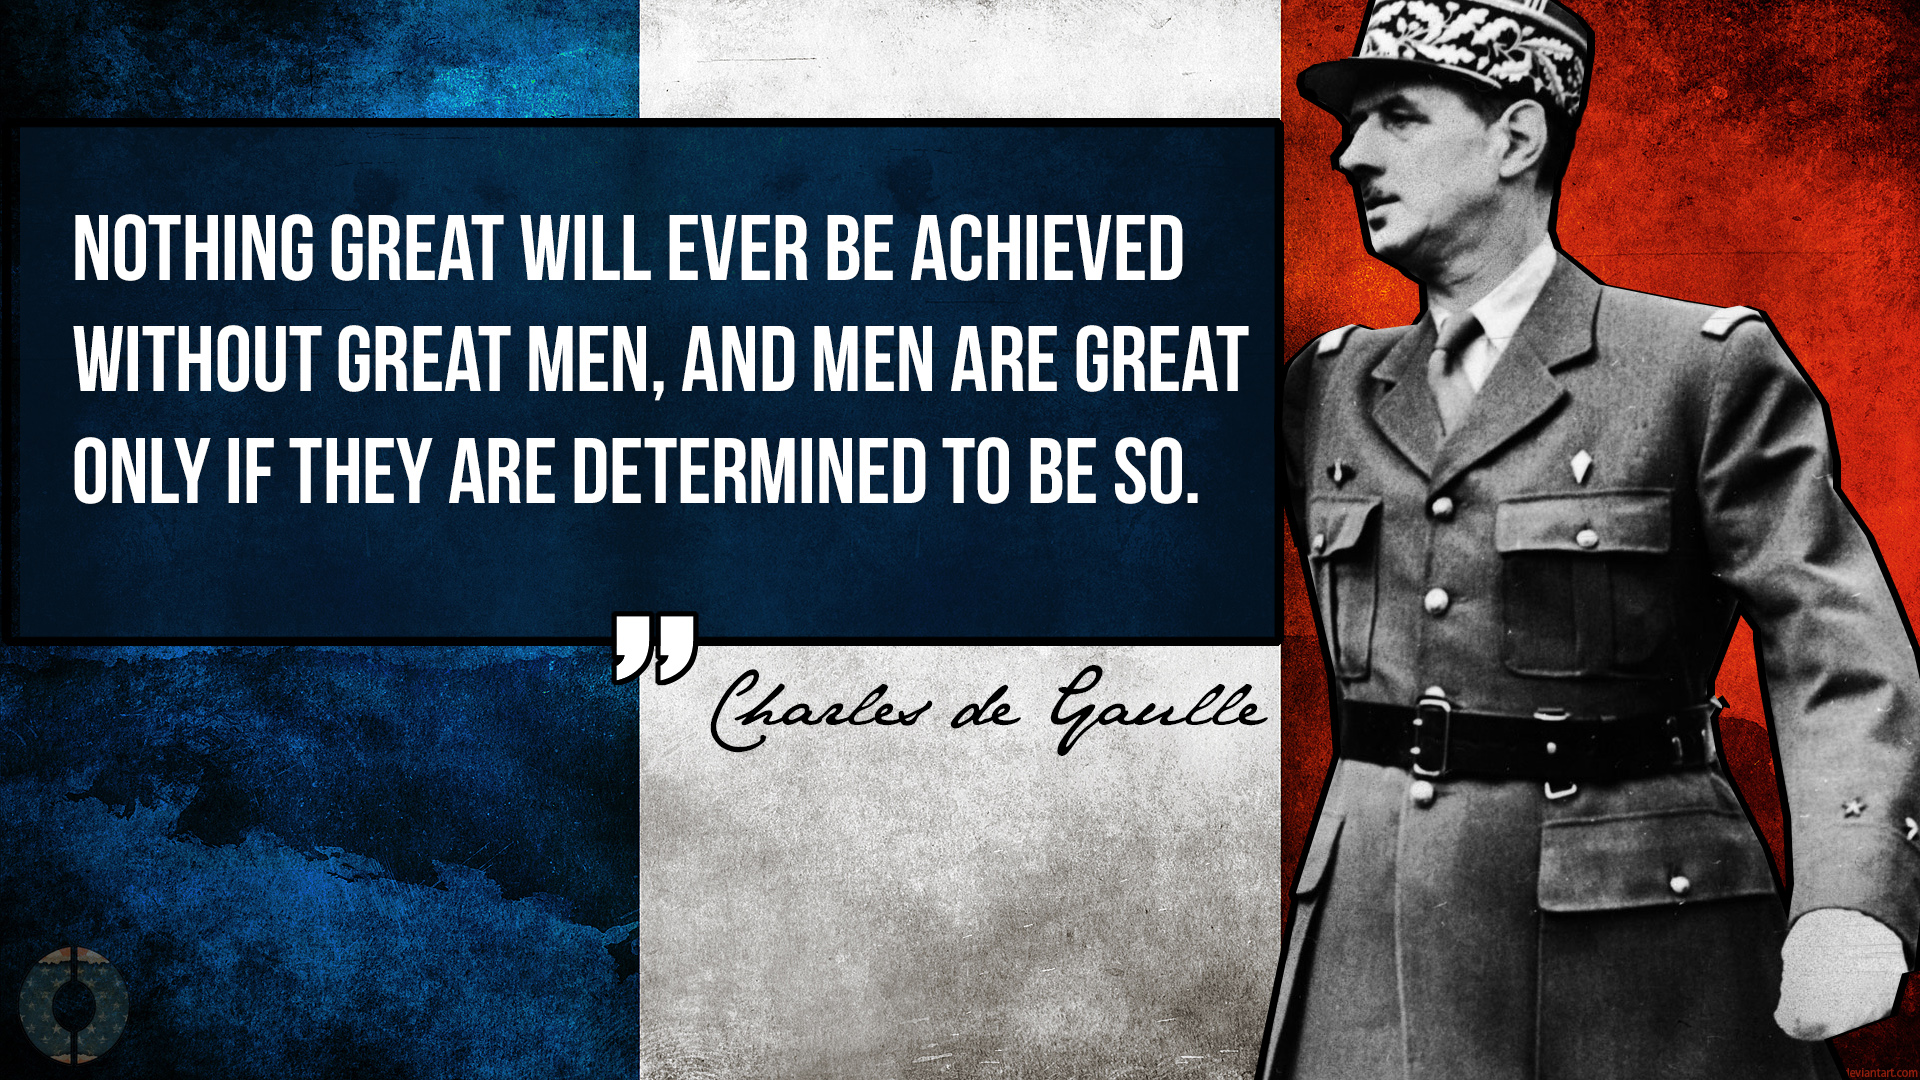 Charles de Gaulle great men quote